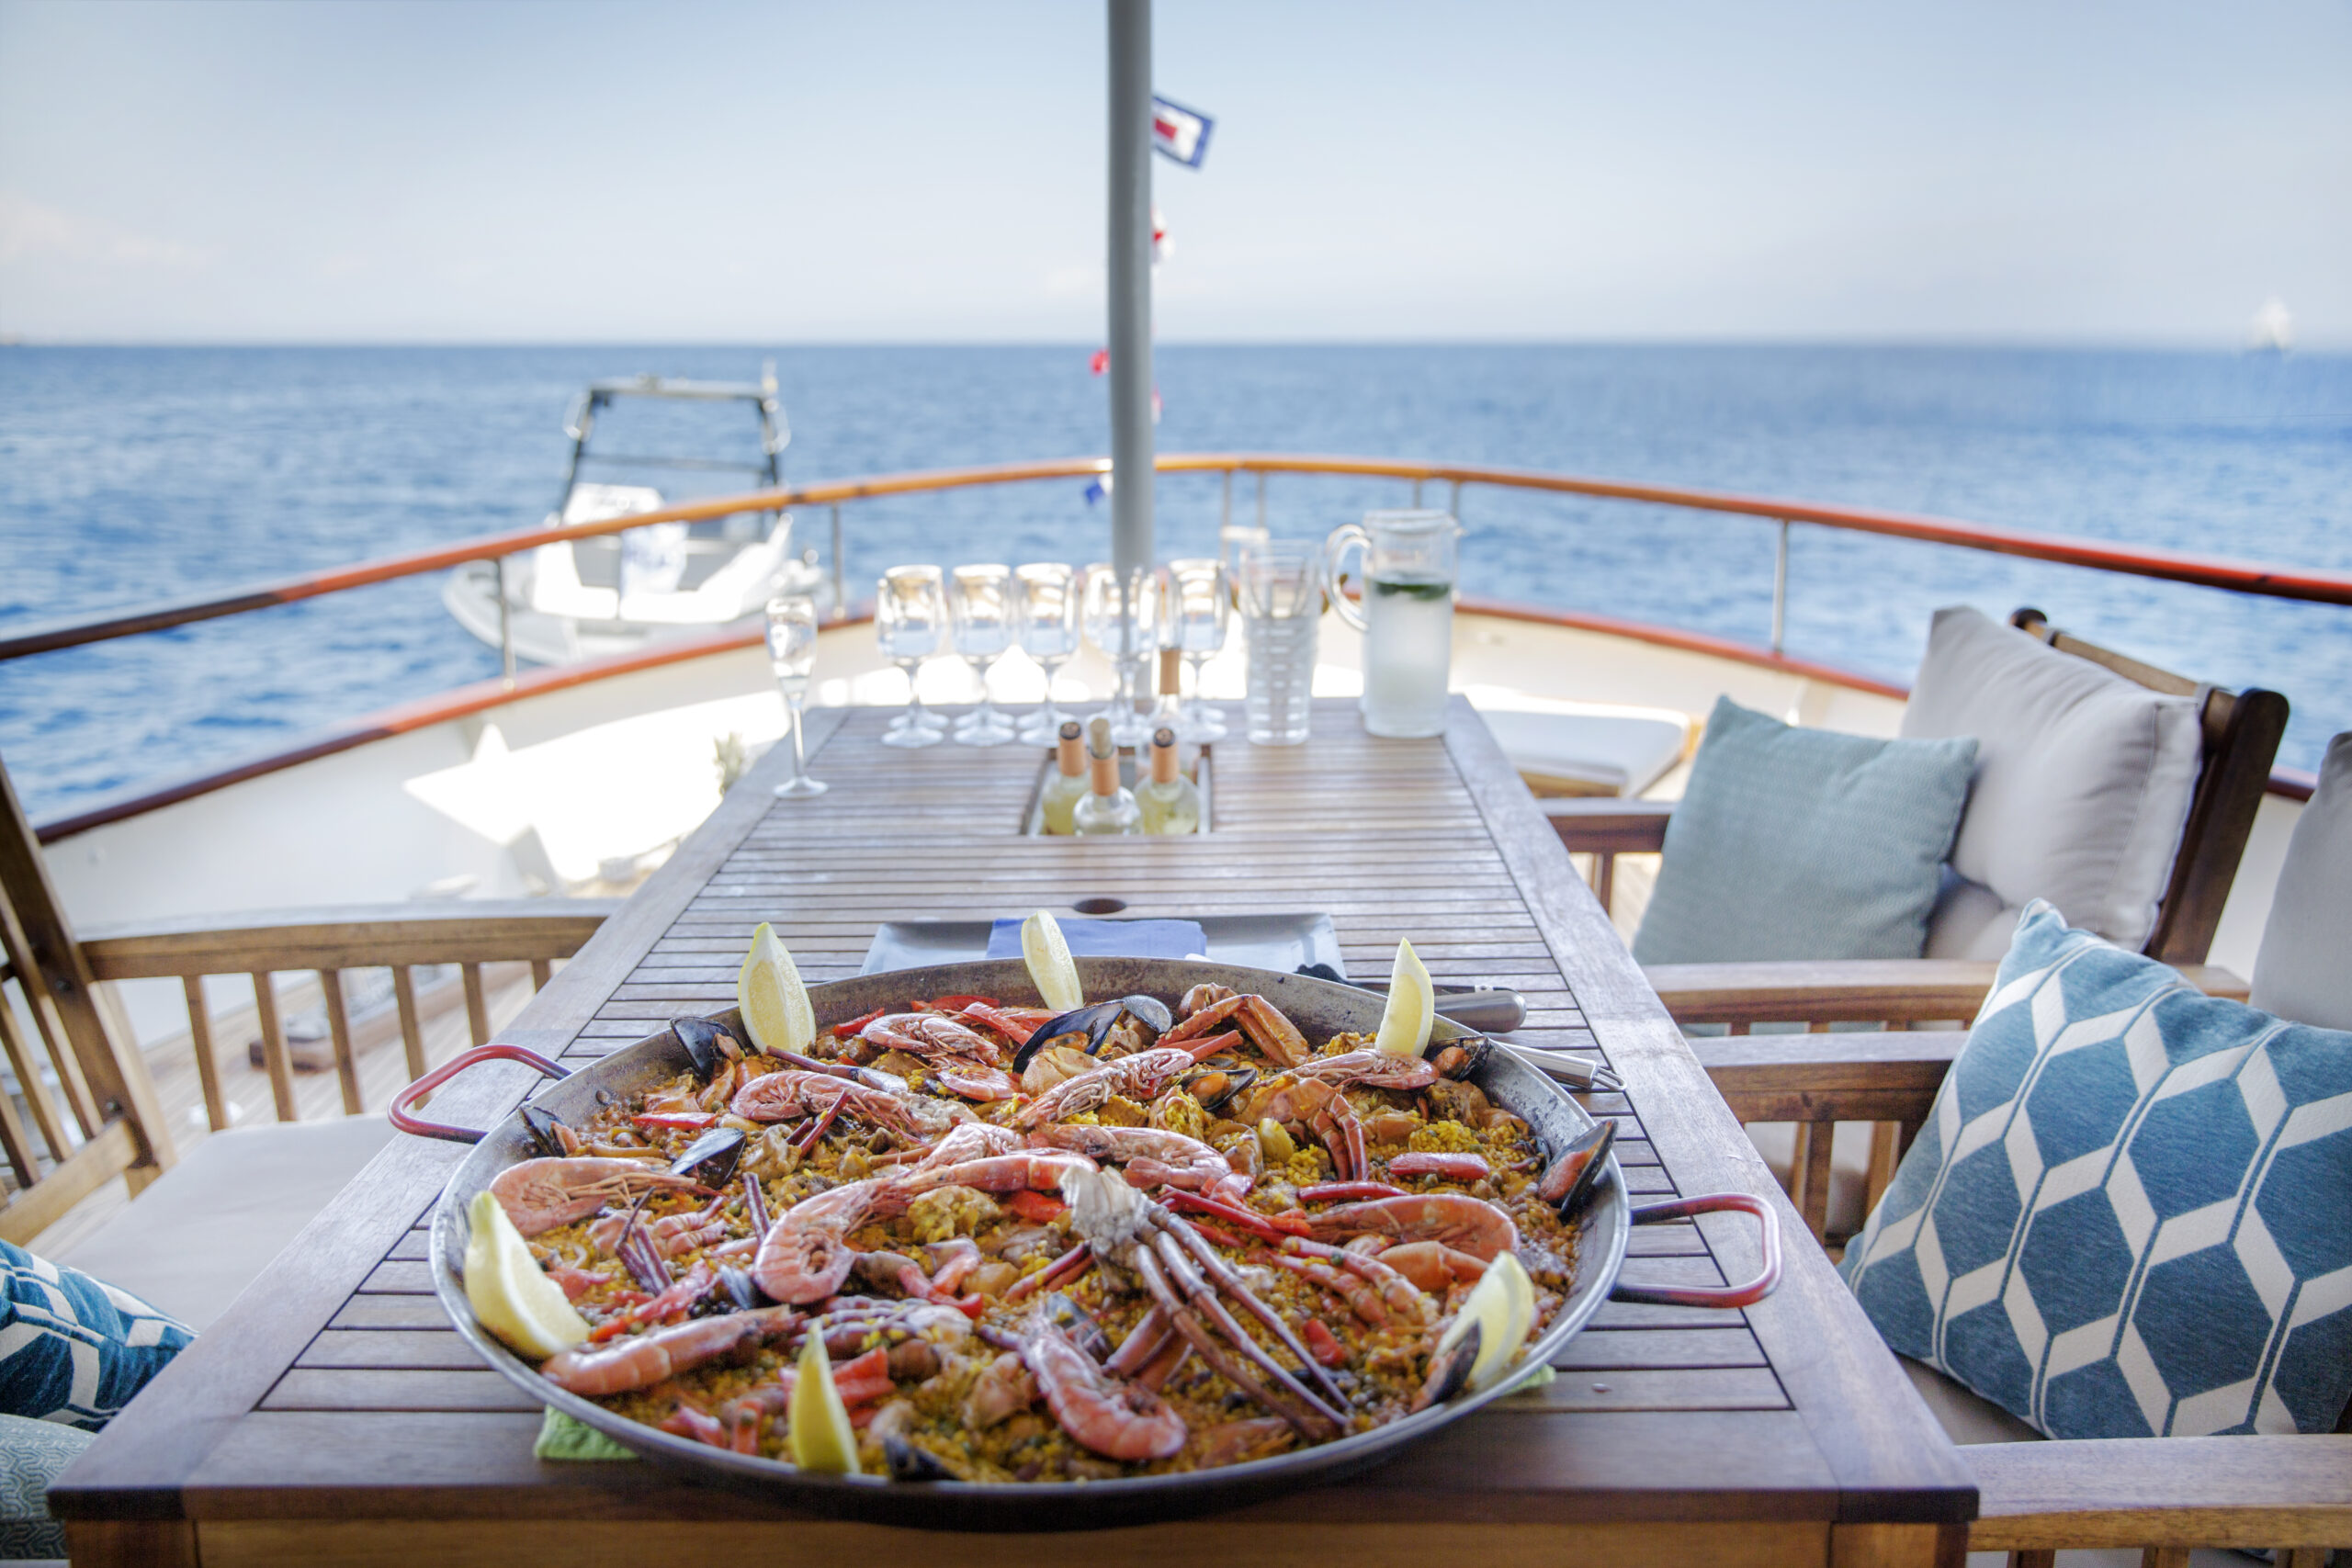 Mallorcan cuisine is steeped in tradition and rooted in local ingredients such as pork, fish and vegetables,